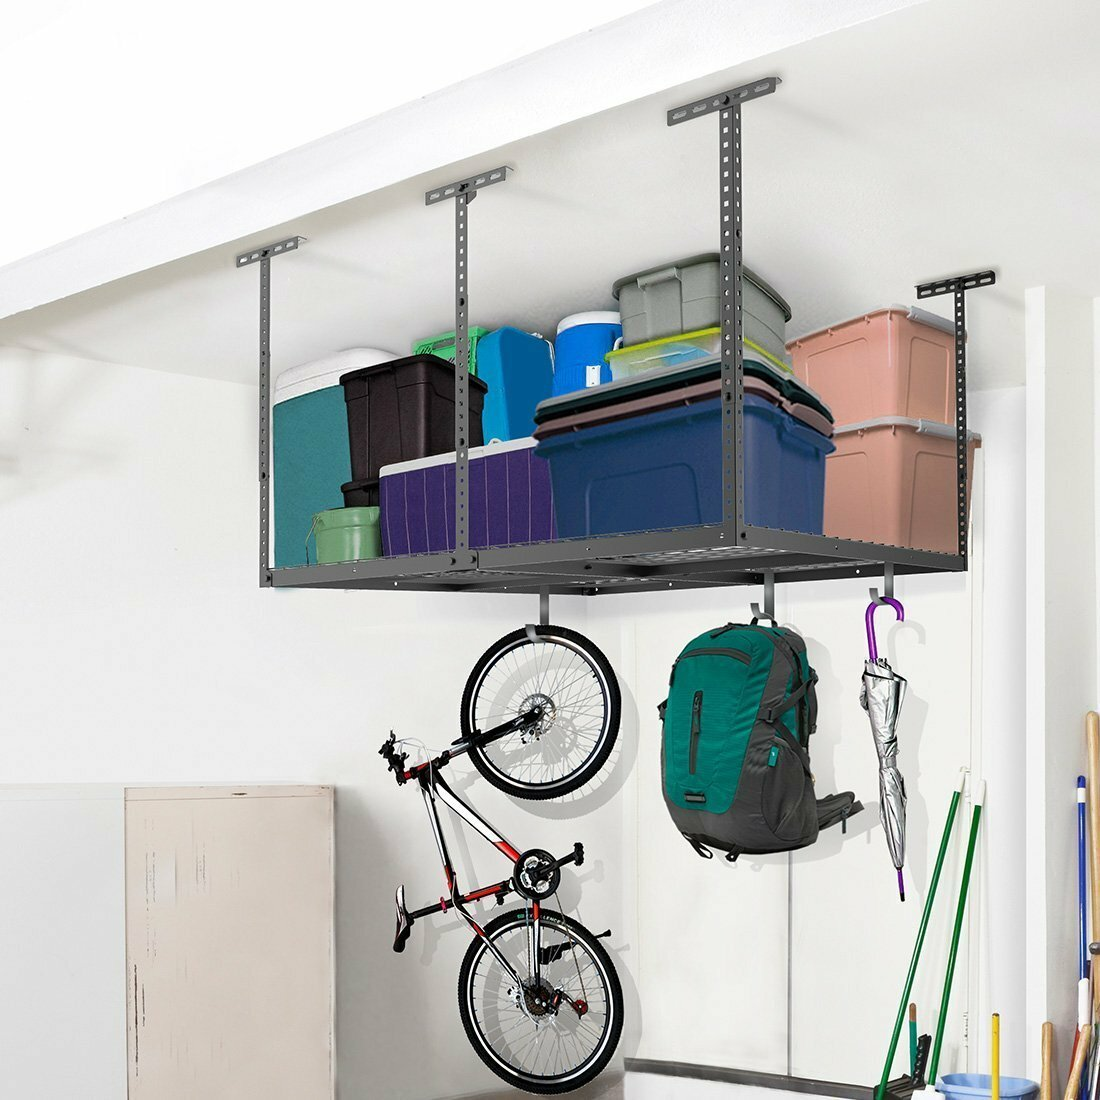 FLEXIMOUNTS Overhead Garage Storage Adjustable Ceiling Storage Rack. FLEXIMOUNTS Overhead Garage Storage Adjustable Ceiling Storage